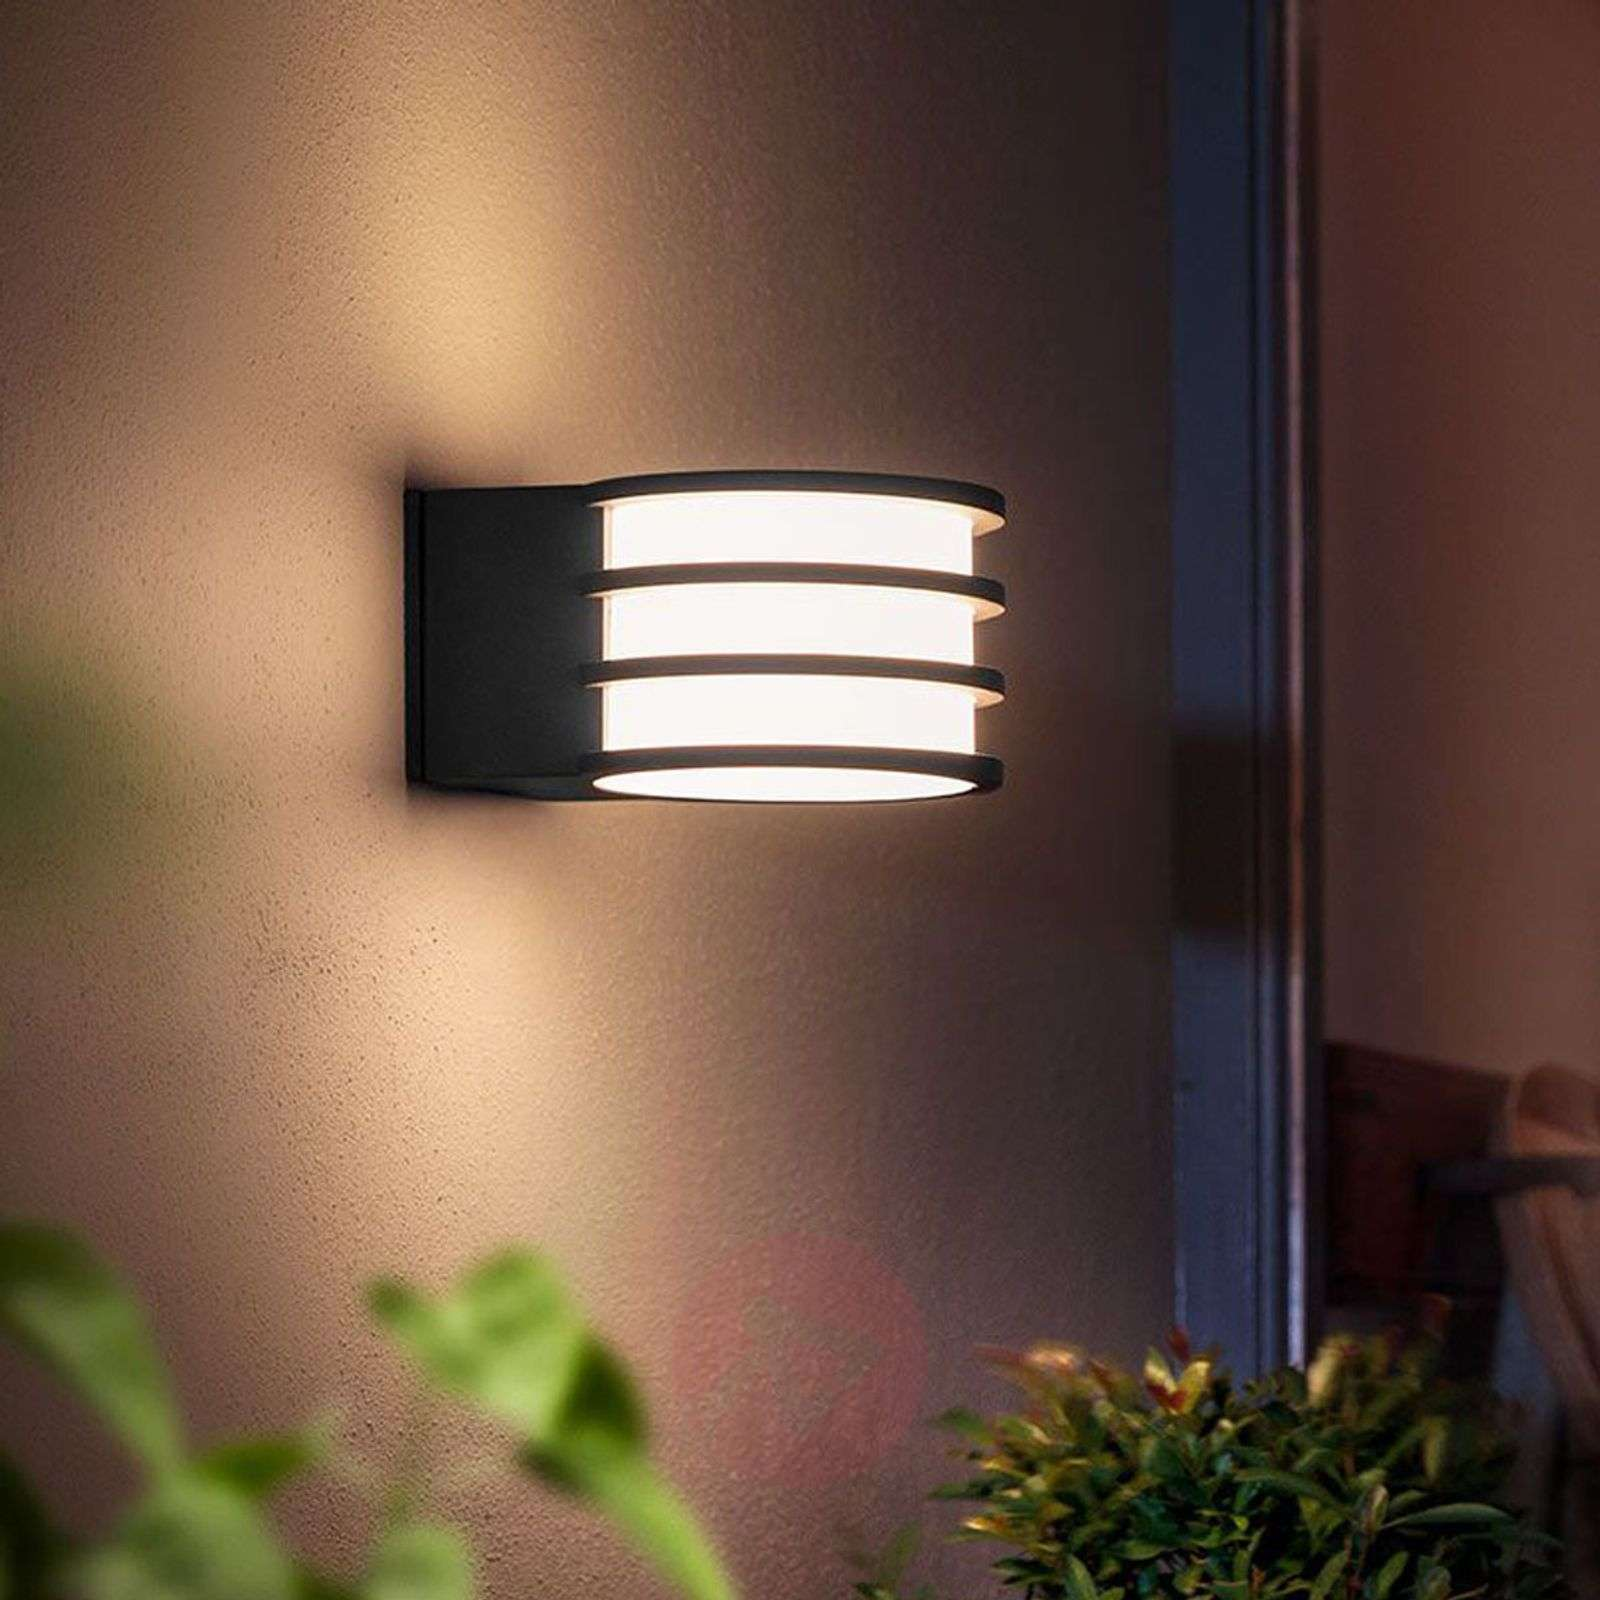 Plafoniere Esterno Philips : Acquista philips hue applique da esterni led lucca lampade.it